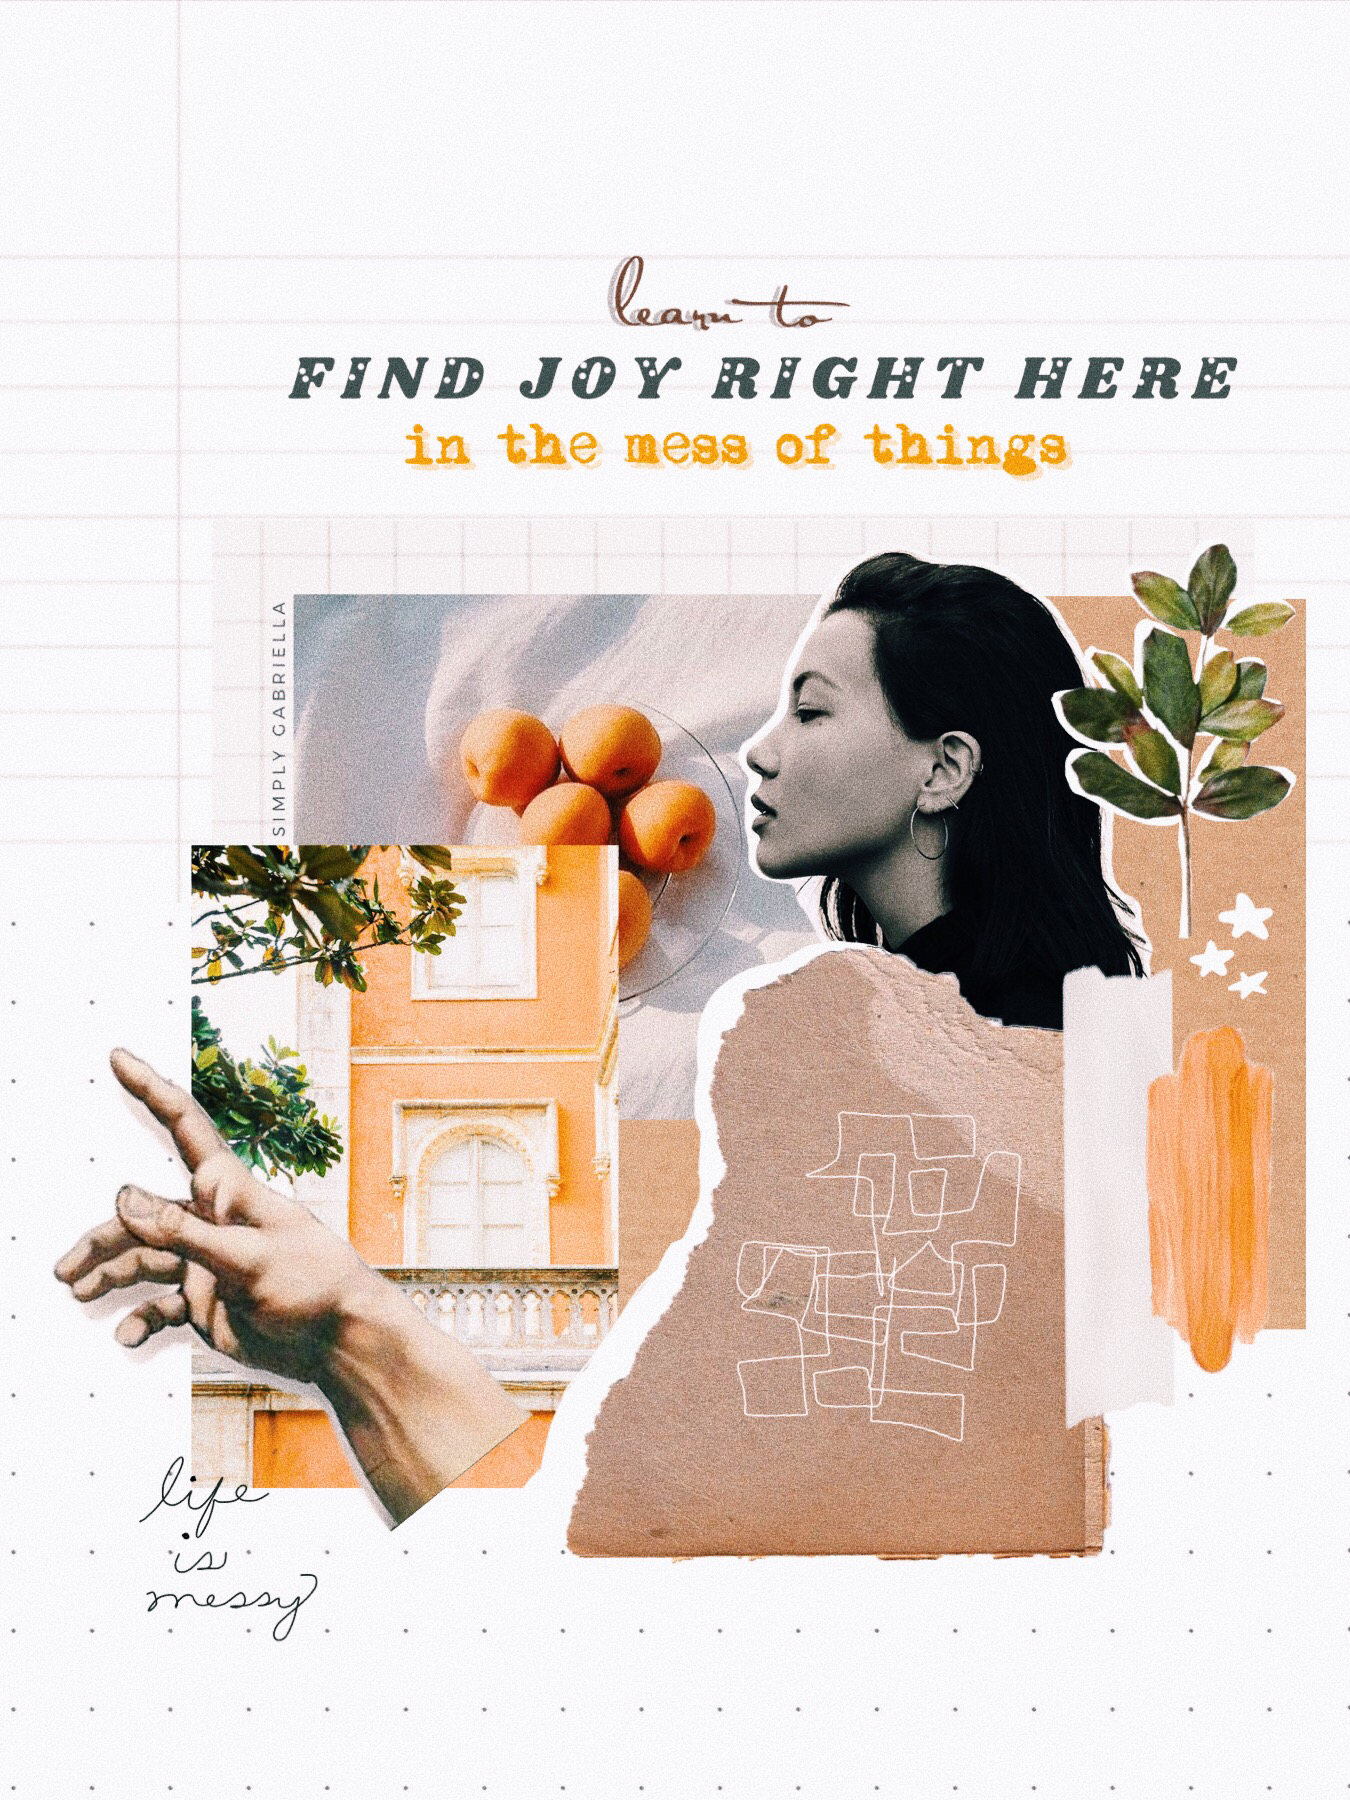 [ t a p ]  heyy hope you're week is going well! this collage was inspired by many different styles on pc, pinterest, etc :) ive had a lot of free time lately because my school is cancelled because of the coronavirus so ive been working on some new collage